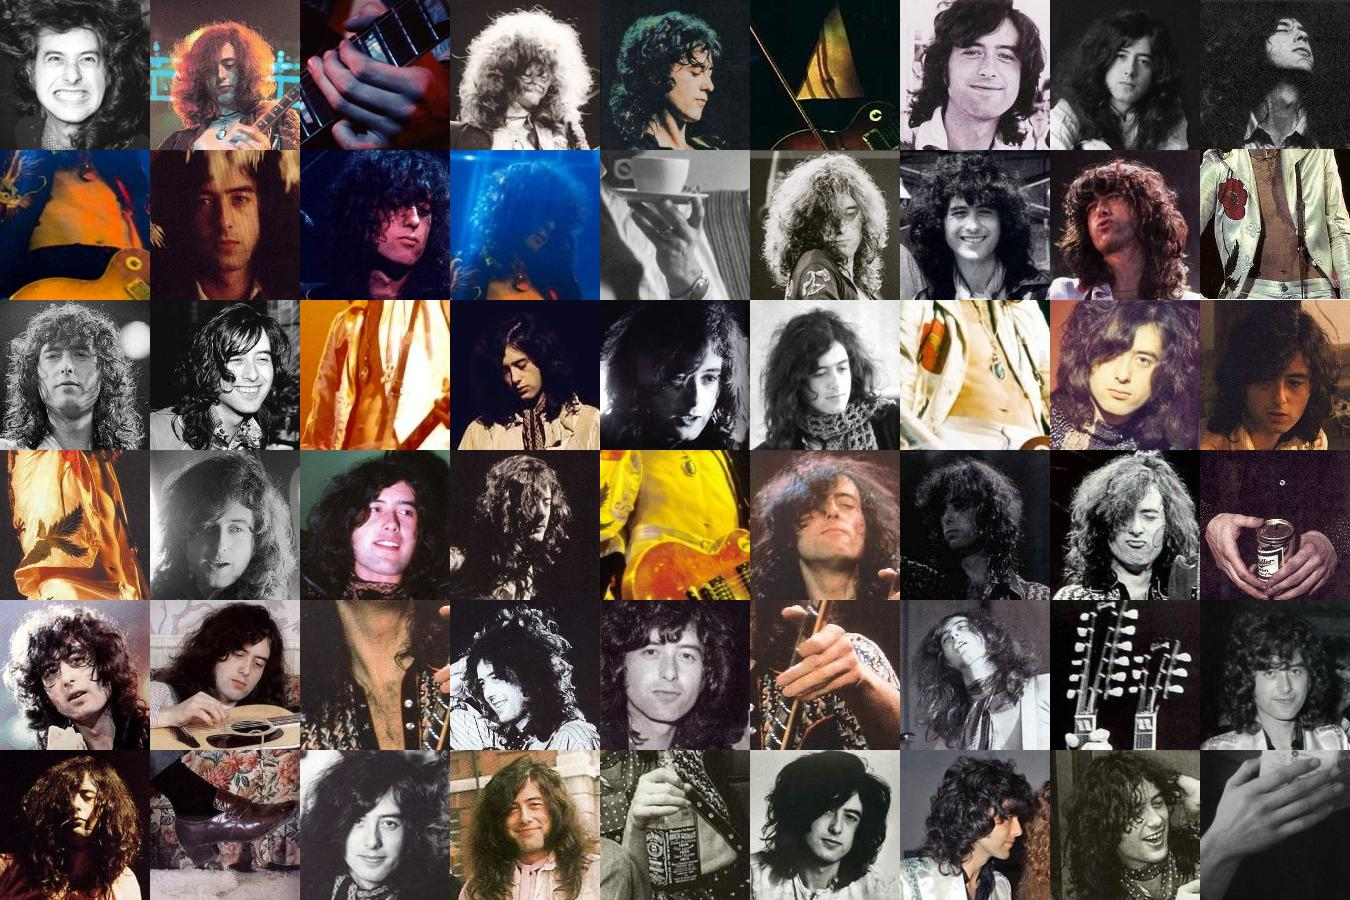 Jimmy_Page__His_many_faces____by_manga_meloney.jpg